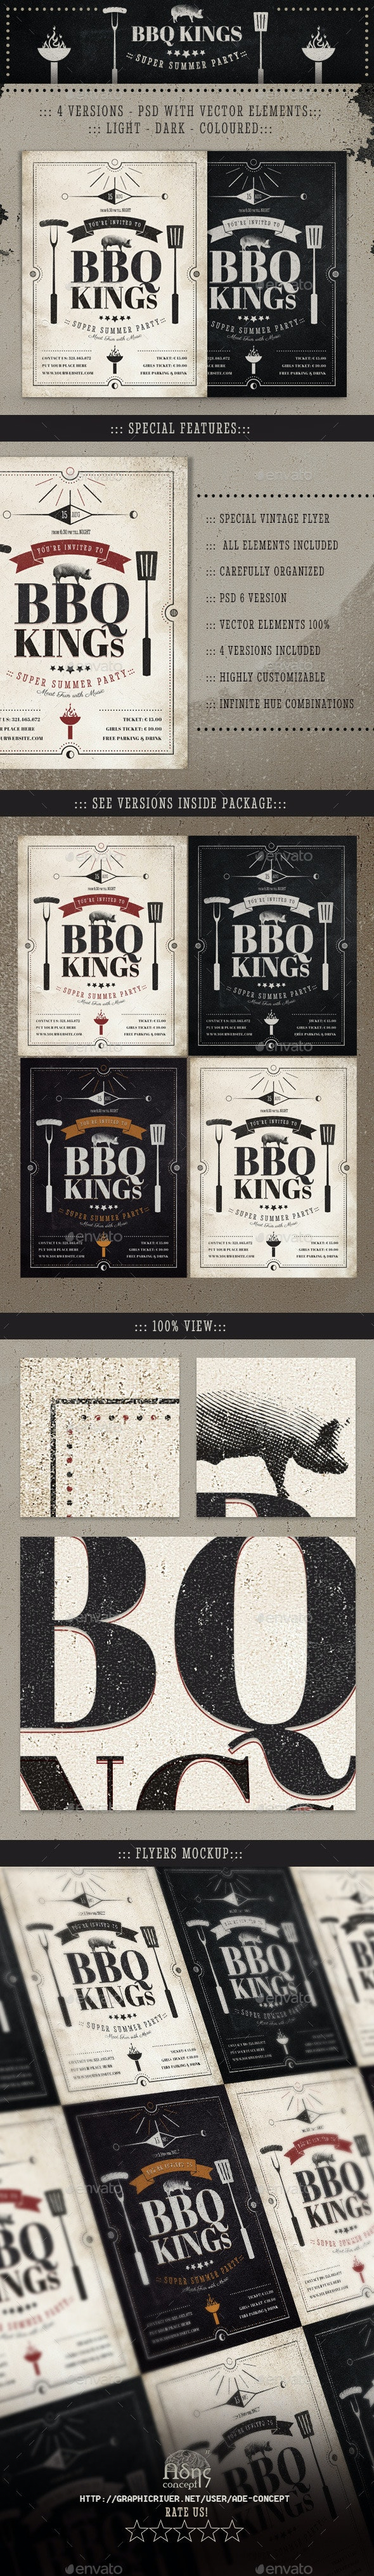 BBQ Kings - Vintage Barbecue Flyer - Events Flyers